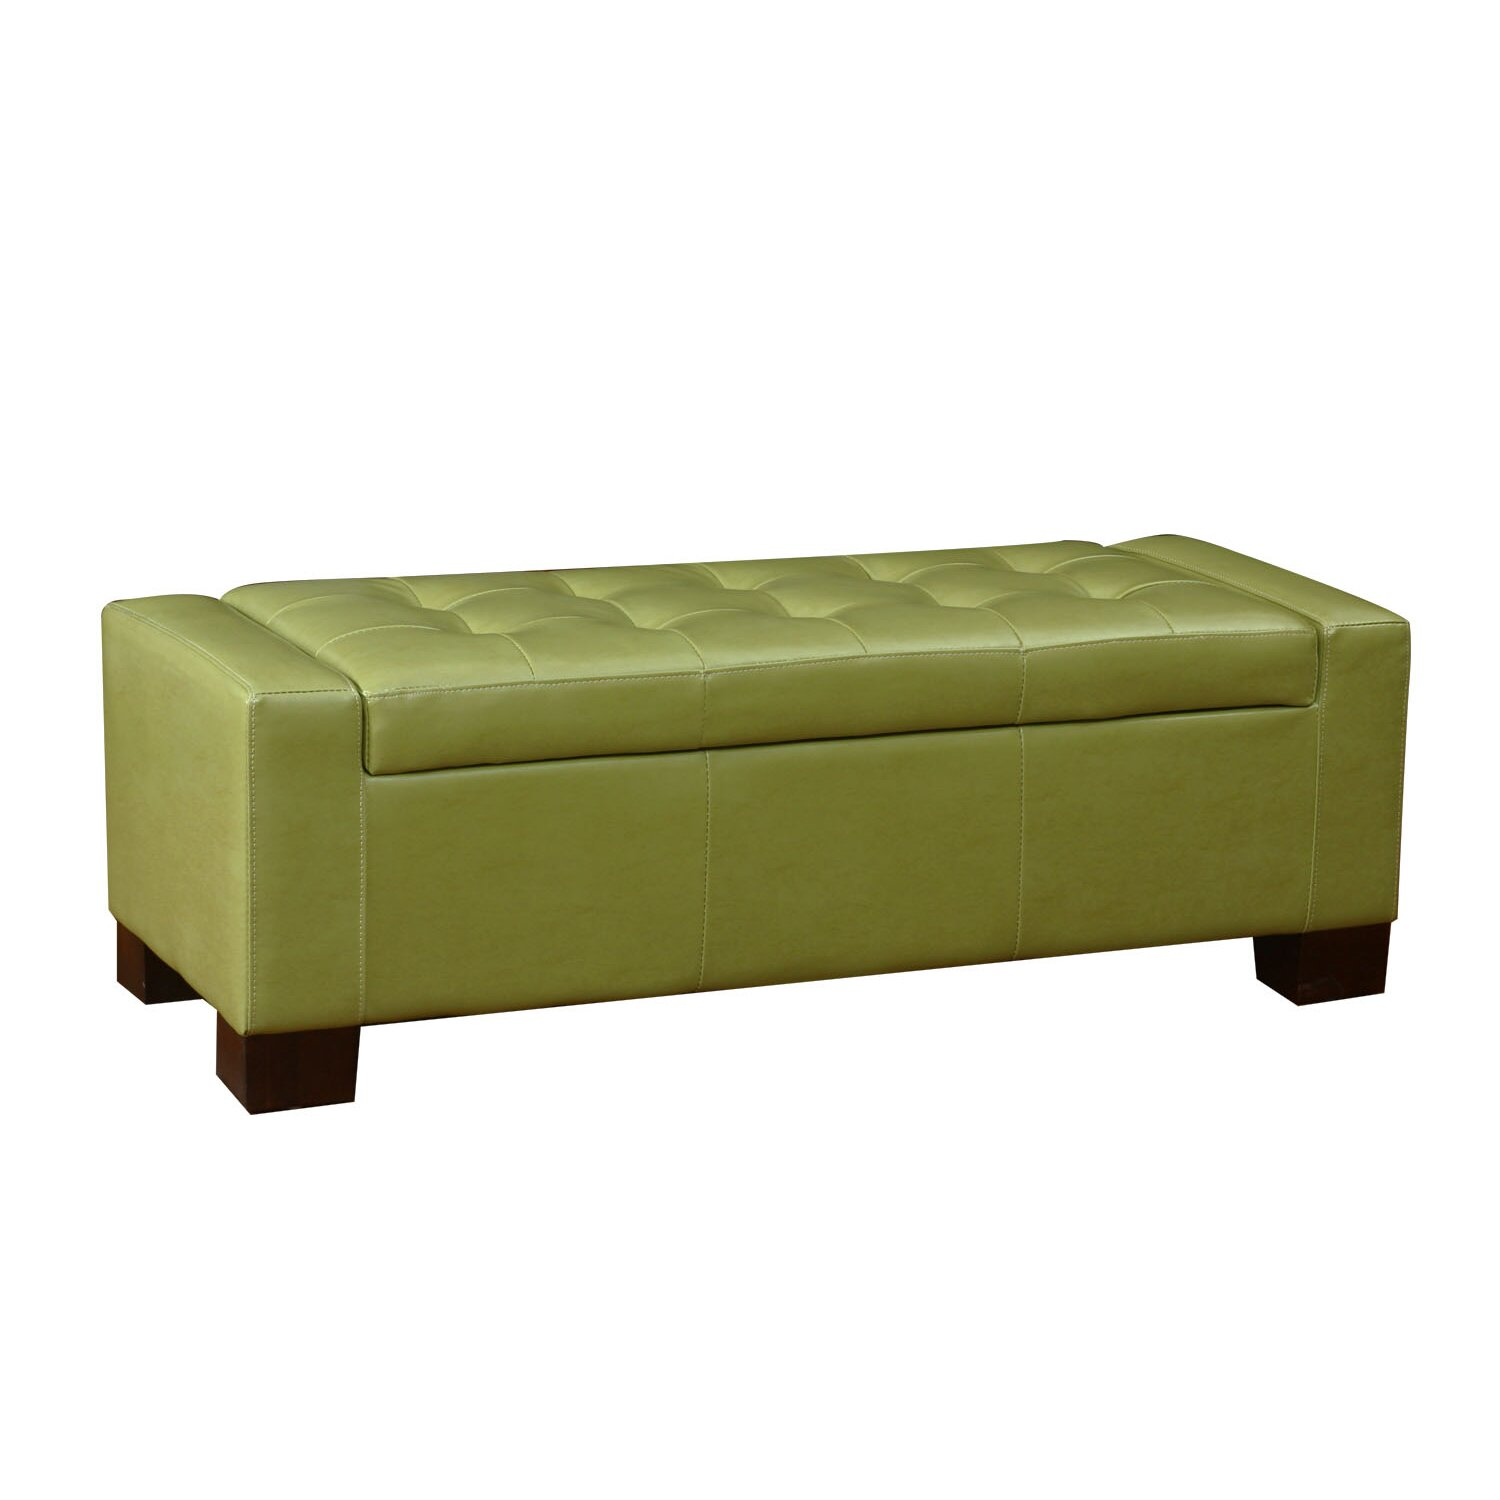 Large Accents Rectangular Tufted Storage Ottoman - AdecoTrading Large Accents Rectangular Tufted Storage Ottoman